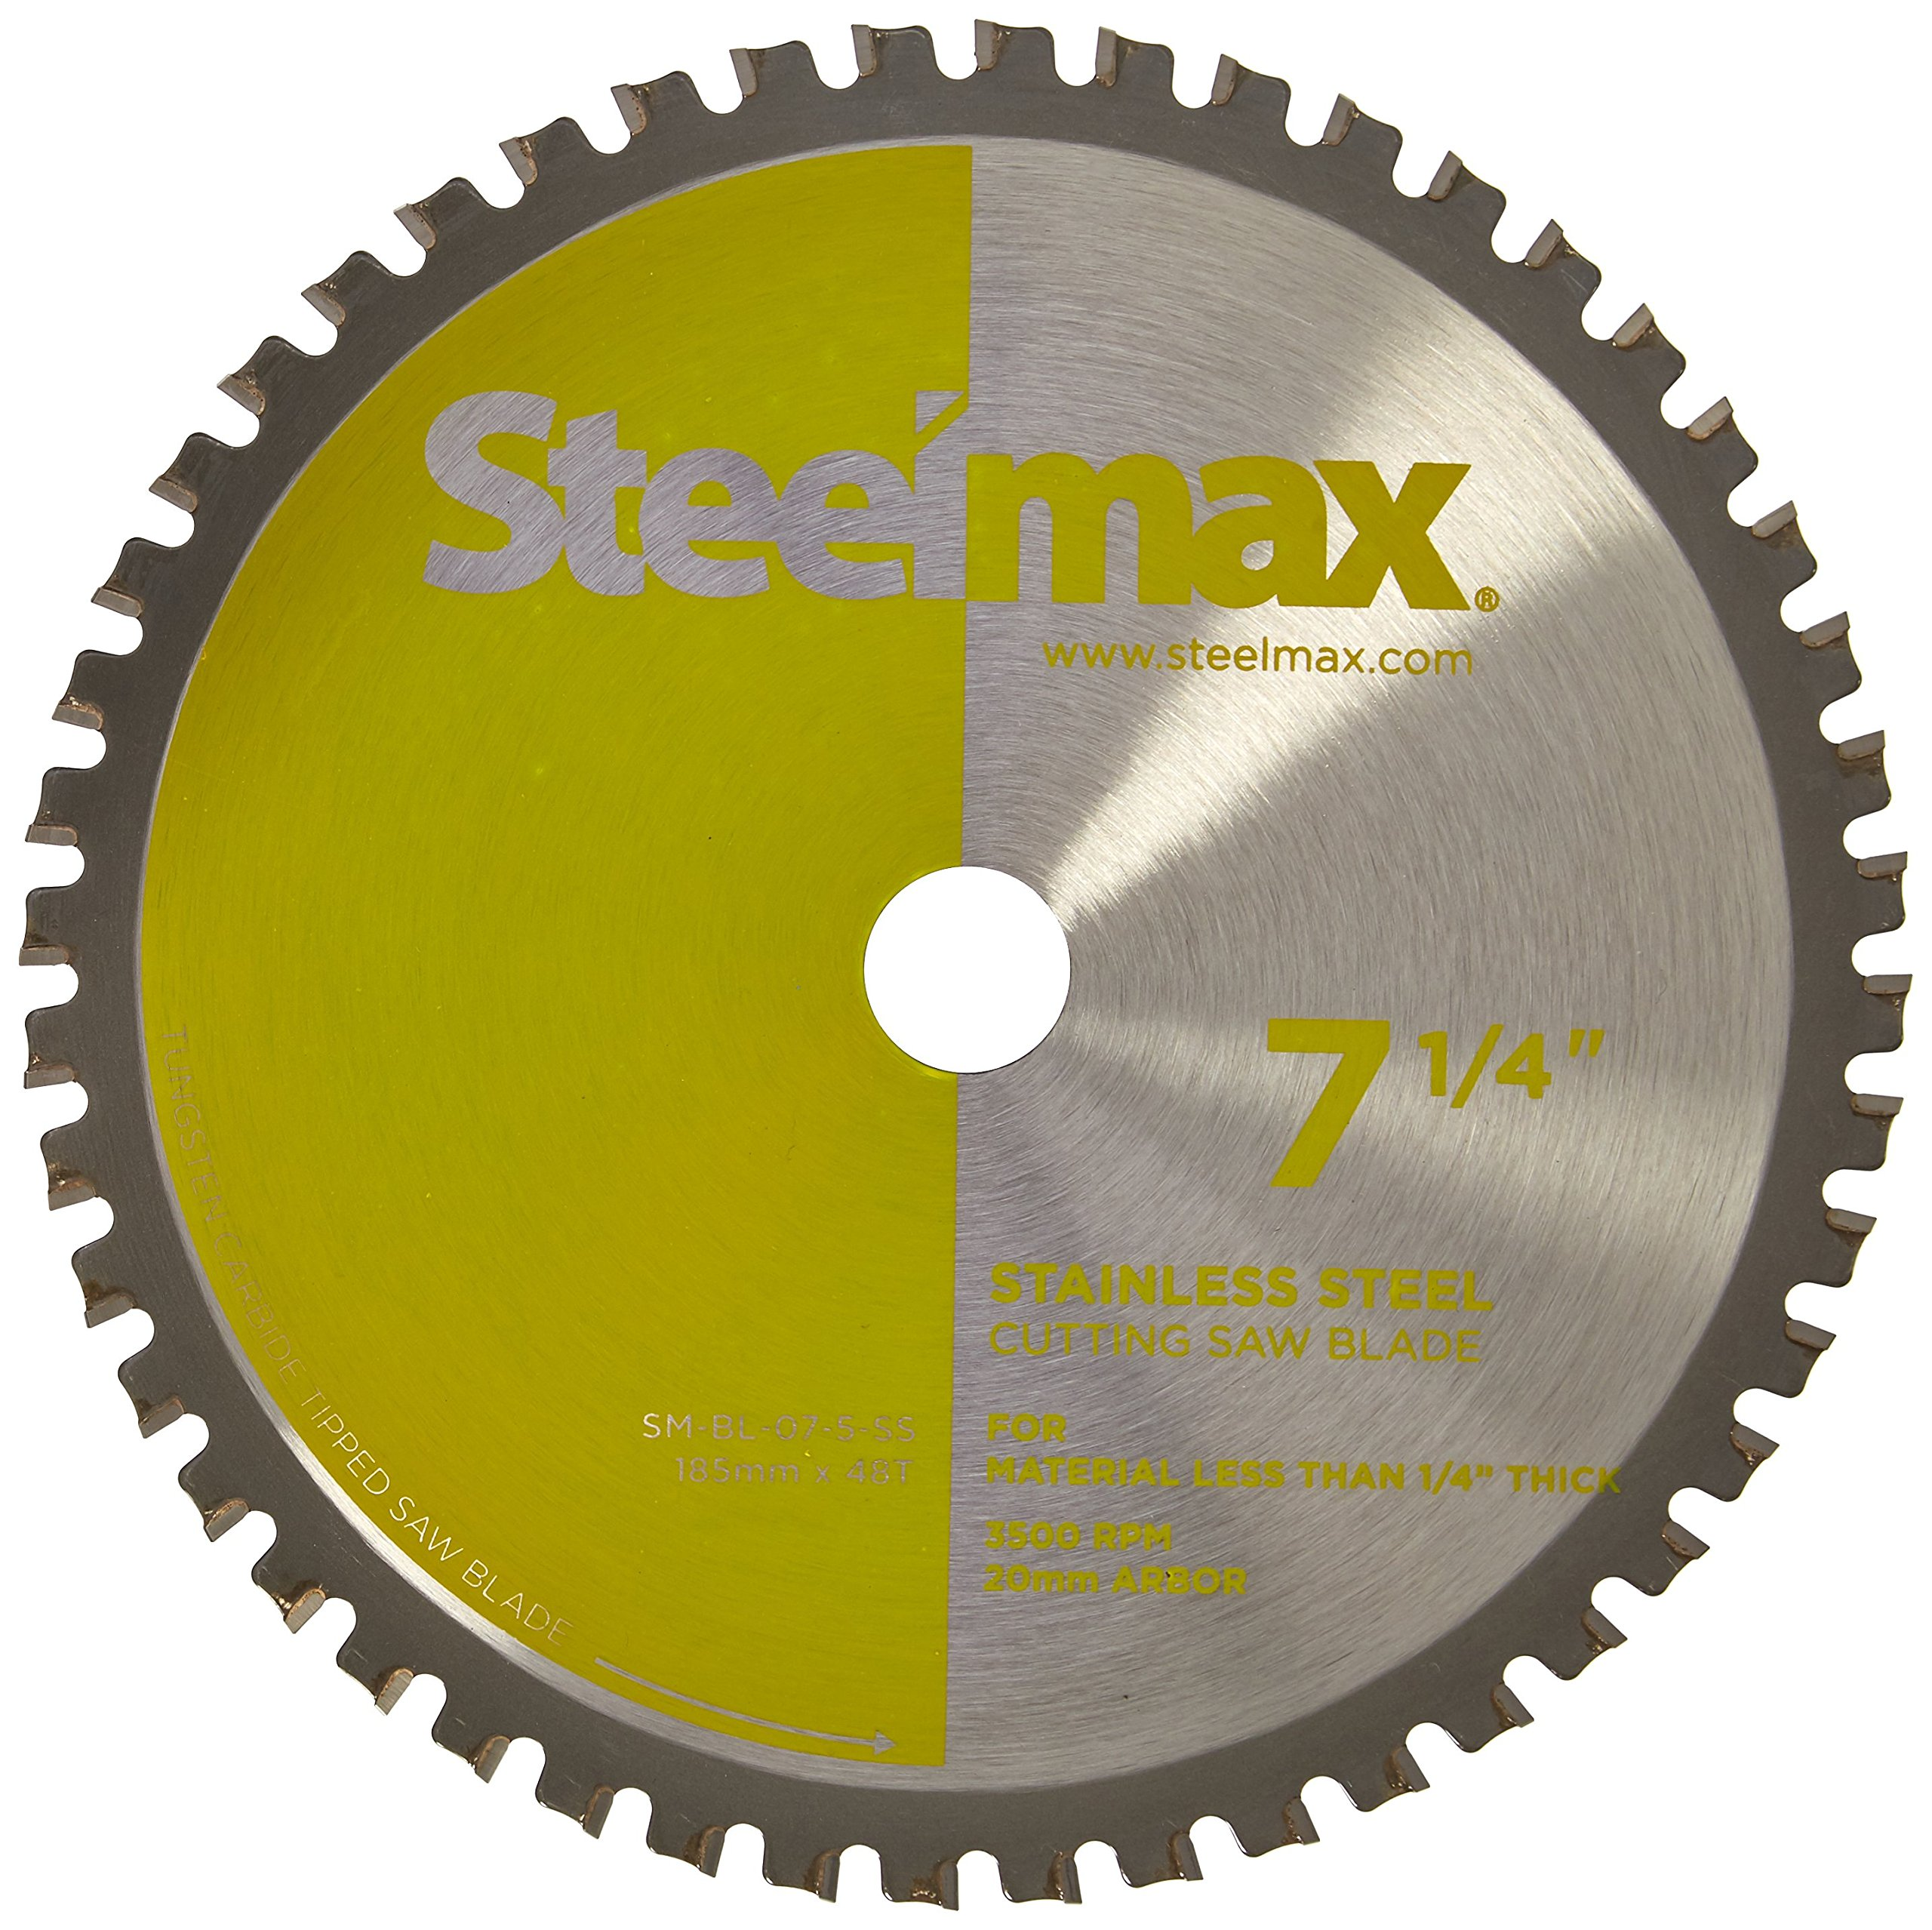 Steelmax 7 1/4'' TCT Blade for Stainless Steel